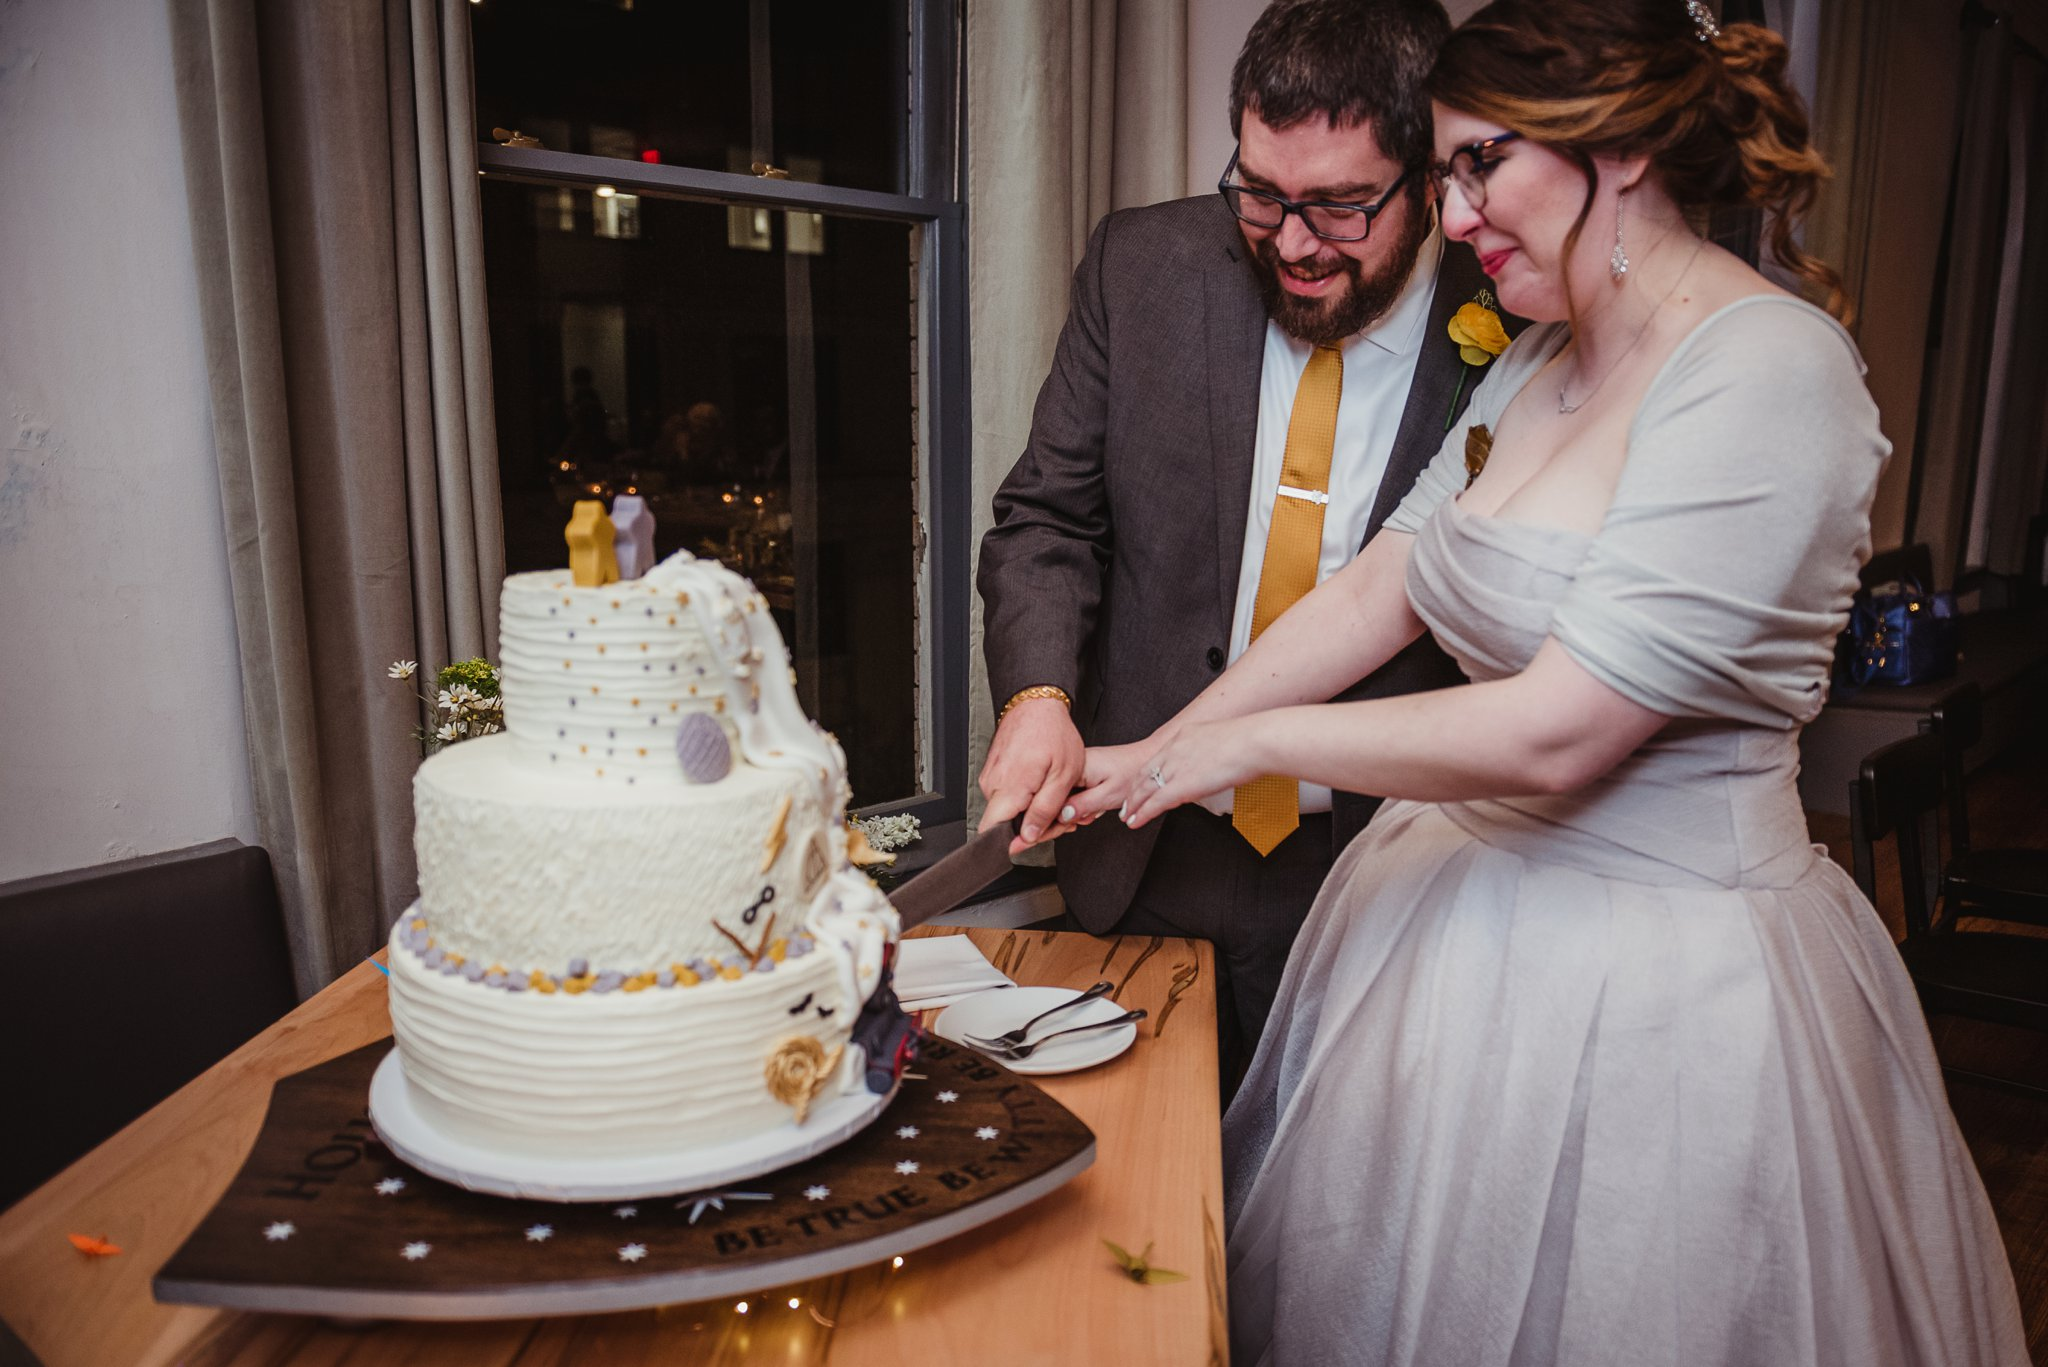 The bride and groom cut their Harry Potter/Star Wars/Lord of the Rings wedding cake at their wedding reception in Raleigh, NC, picture by Rose Trail Images.